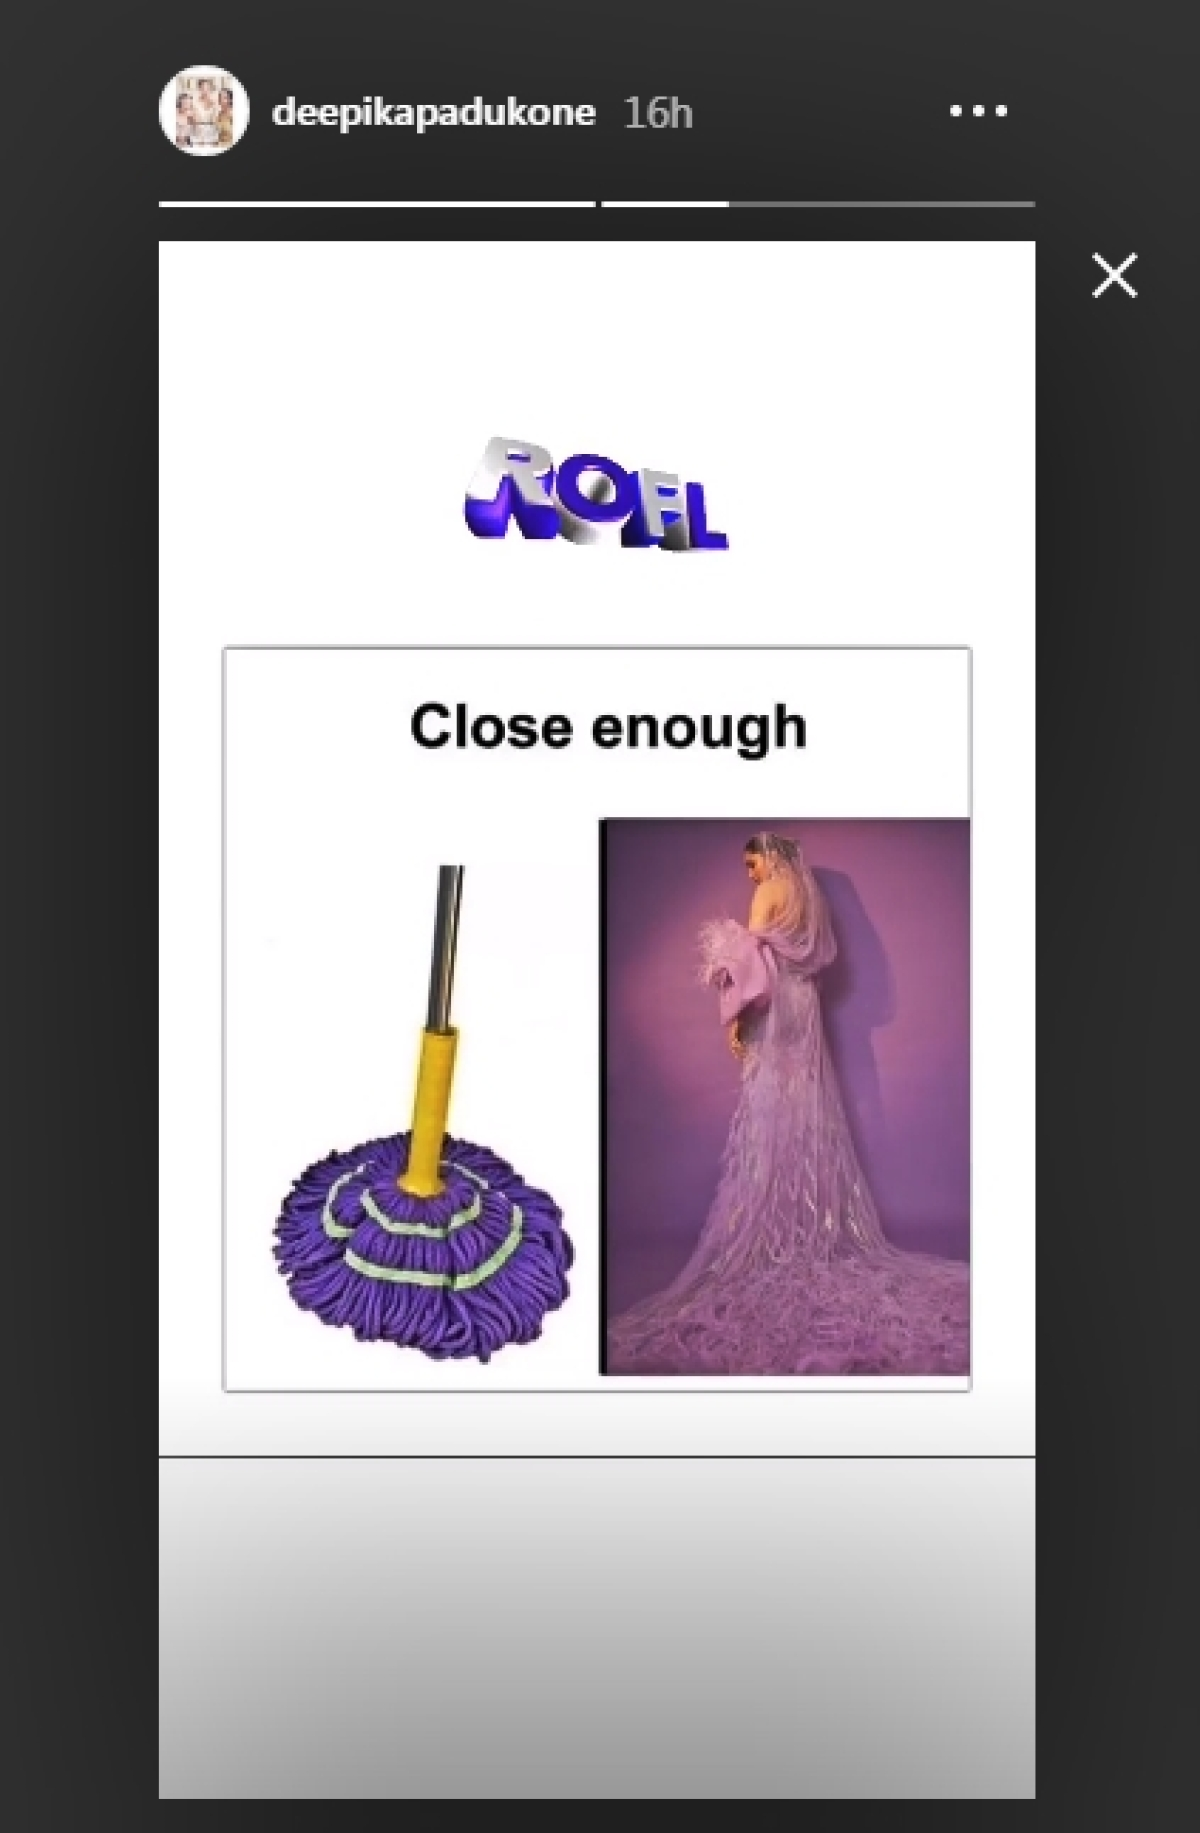 Deepika Padukone shares meme comparing her purple outfit to a mop